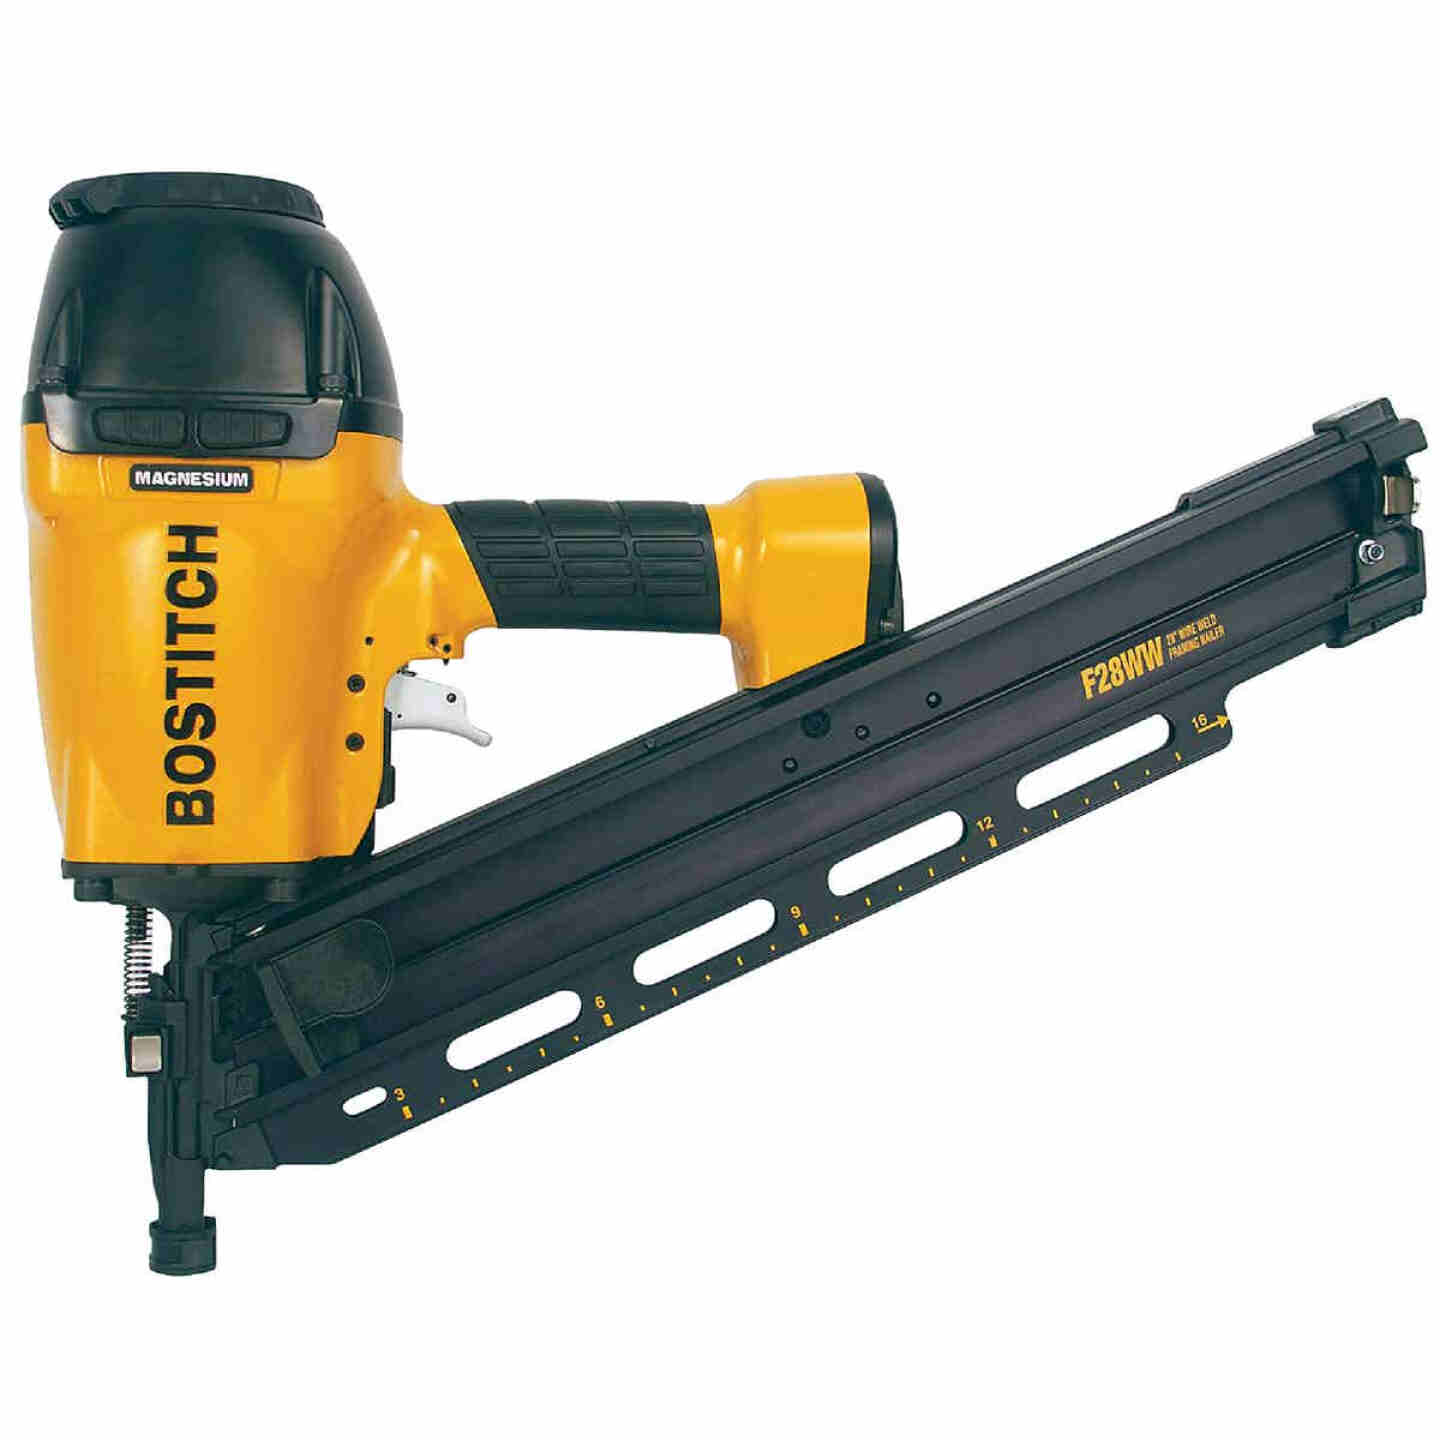 Bostitch 28 Degree 3-1/2 In. Wire Weld Industrial Framing Nailer Image 1